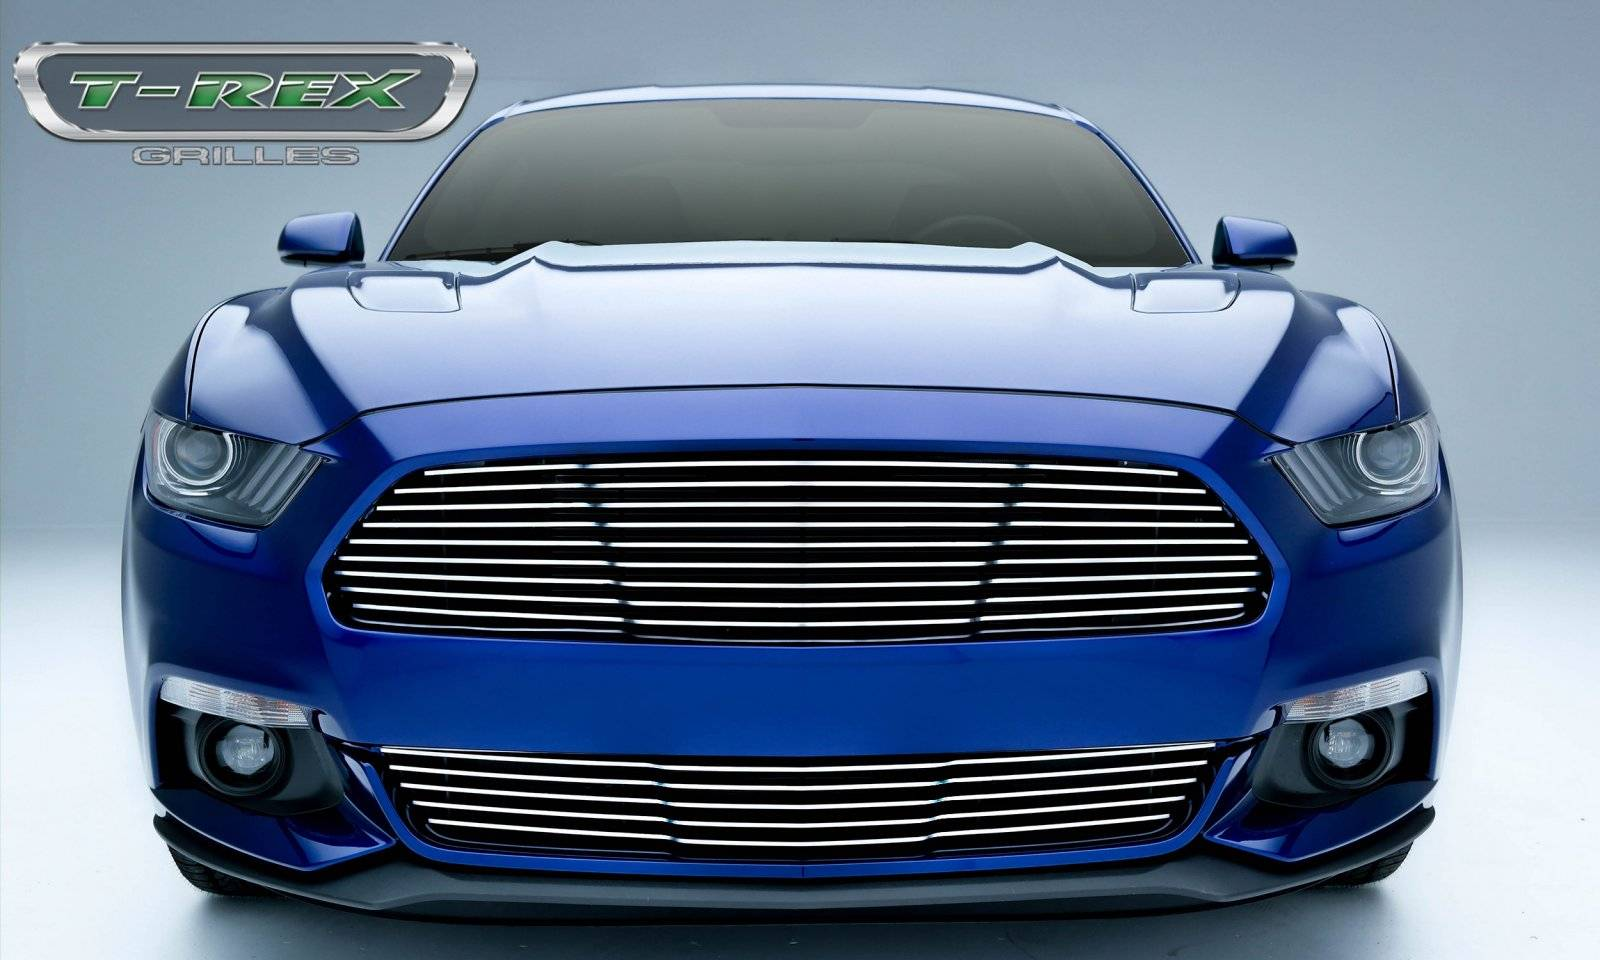 T-REX Ford Mustang GT - Laser Billet Grille - Main, Replacement  with Polished Face - Pt # 6215300